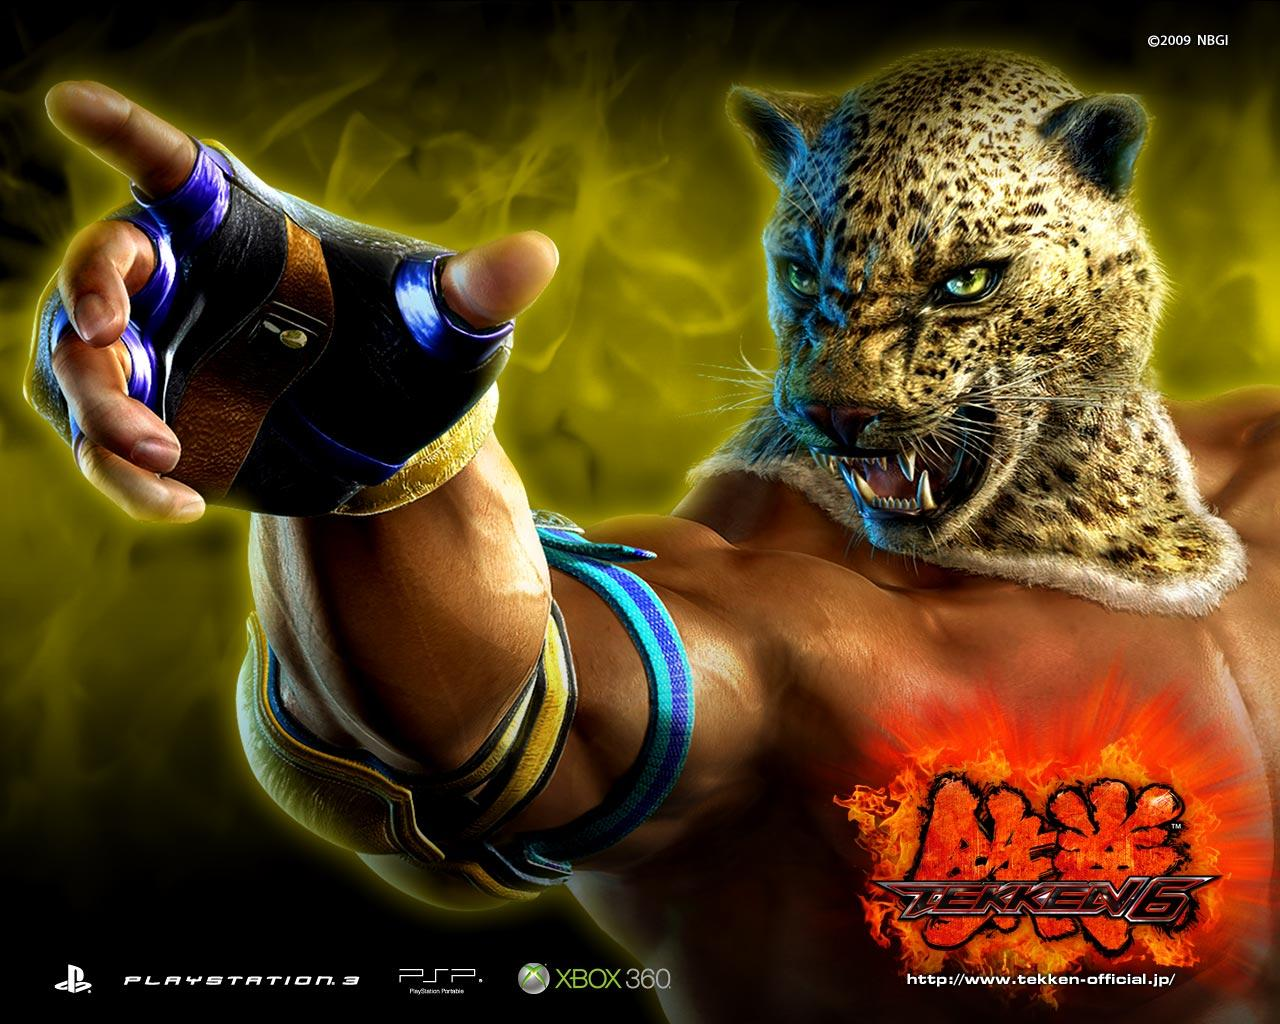 Tekkenking King Wallpaper 1280x1024 Full HD Wallpapers 1280x1024